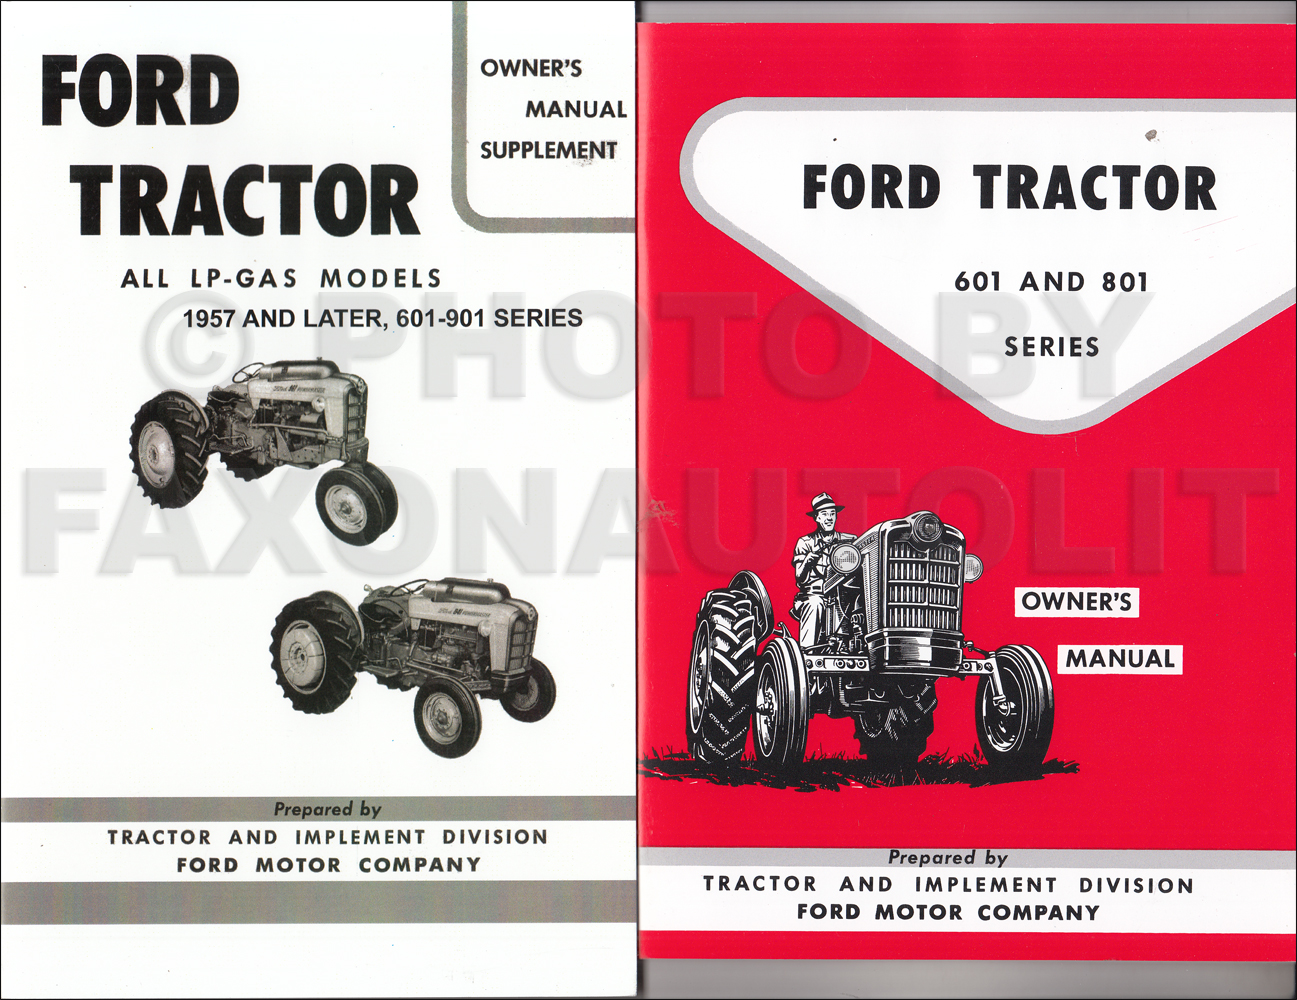 1962 Ford Tractor Wiring Diagram Diagrams 4000 Electrical 1957 601 801 Series Lp Gas Owner S Manual Set Rh Faxonautoliterature Com 1936